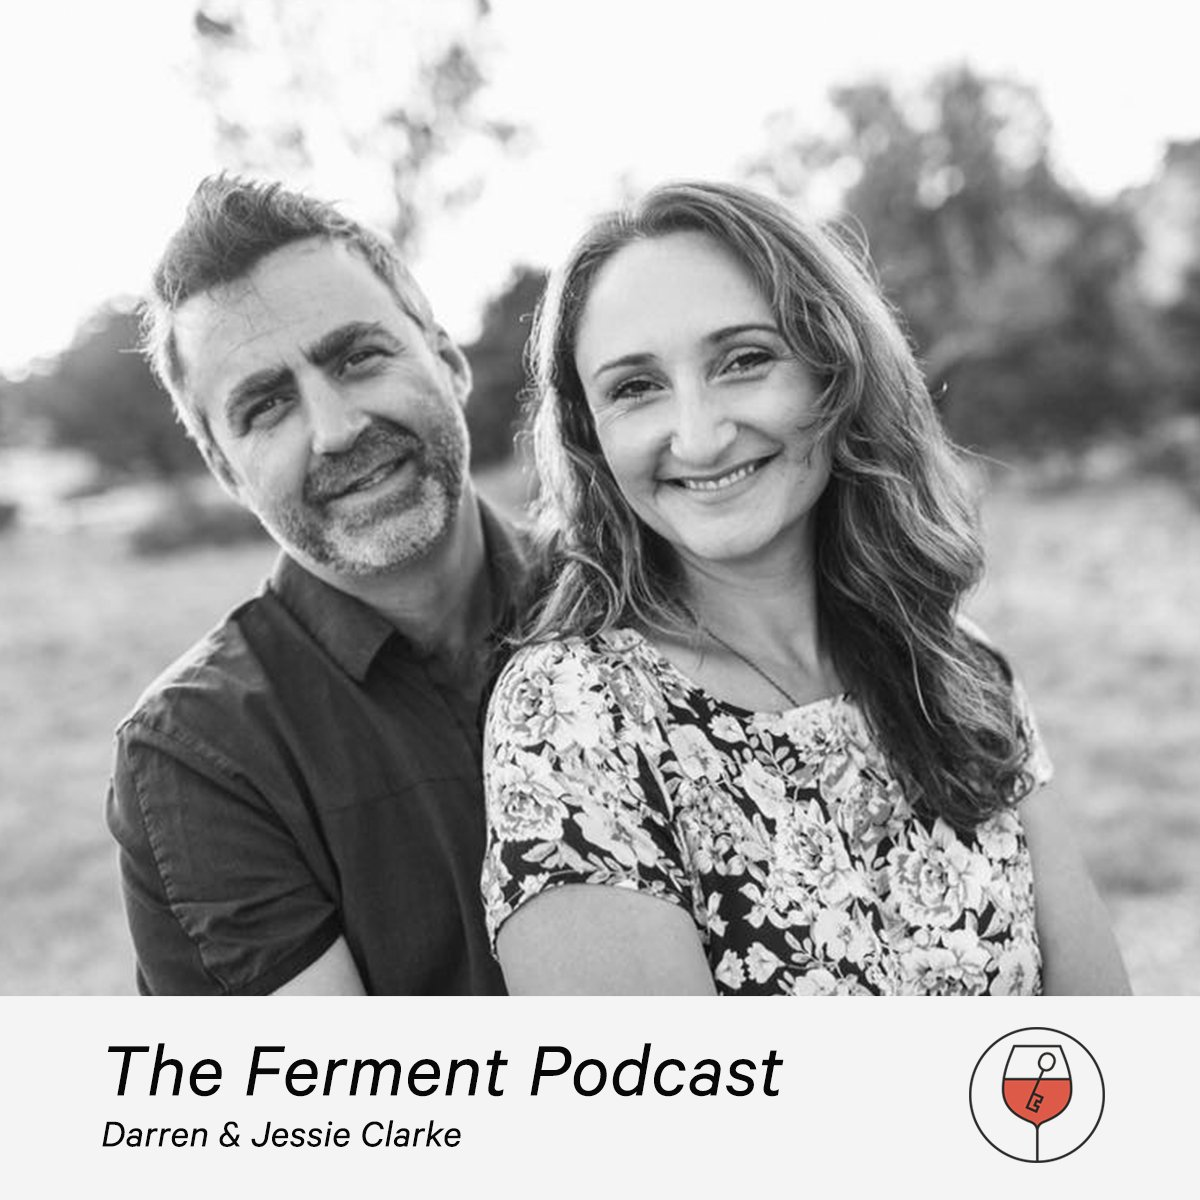 """This week's guests are Darren & Jessie Clarke — worship leaders, songwriters, and authors of the global worship hit """"I Love Your Presence.""""  http://www.thefermentpodcast.com ⠀⠀⠀⠀⠀⠀⠀⠀⠀⠀⠀⠀ ⠀⠀⠀⠀⠀⠀⠀ #worshipandtransformation #adamrussellpic.twitter.com/Auw6iQsoxe"""